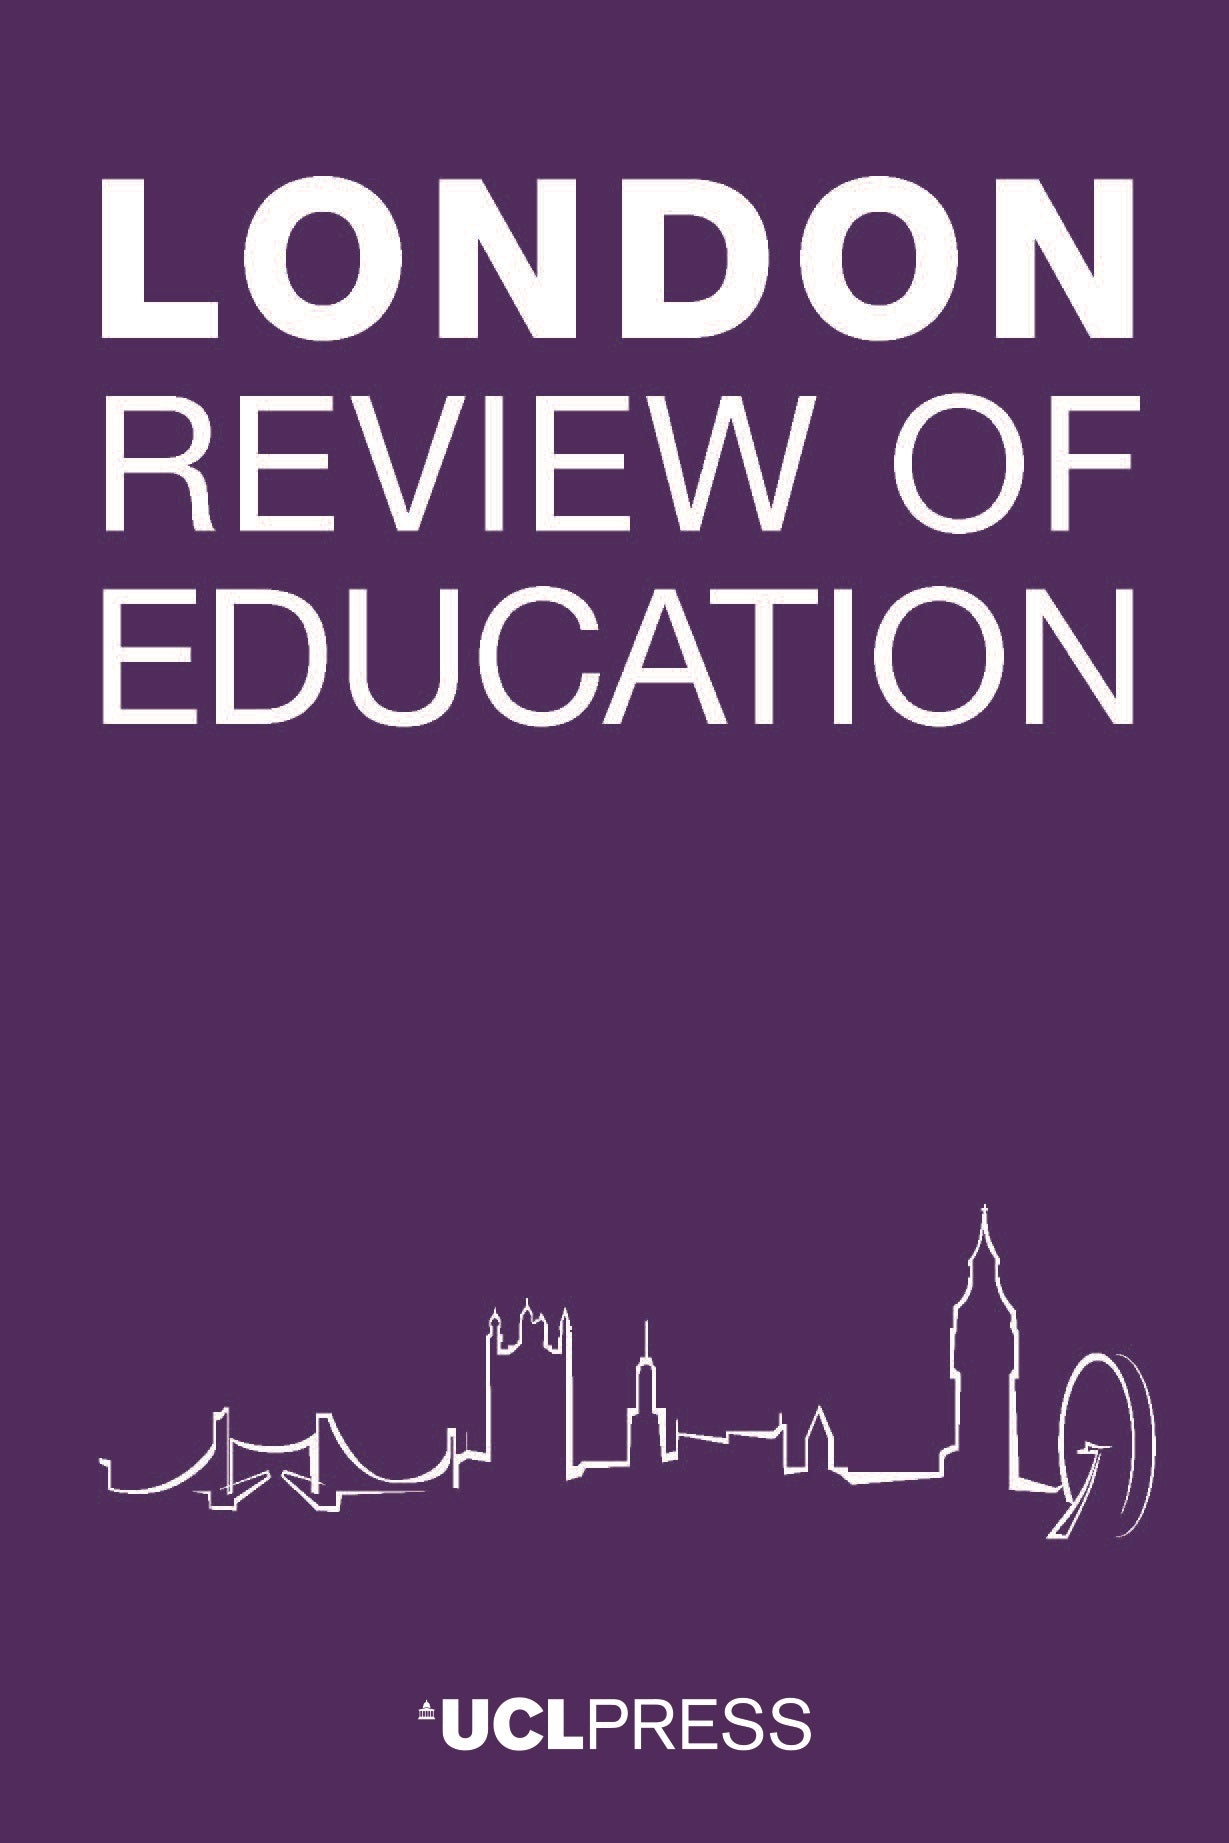 London Review of Education